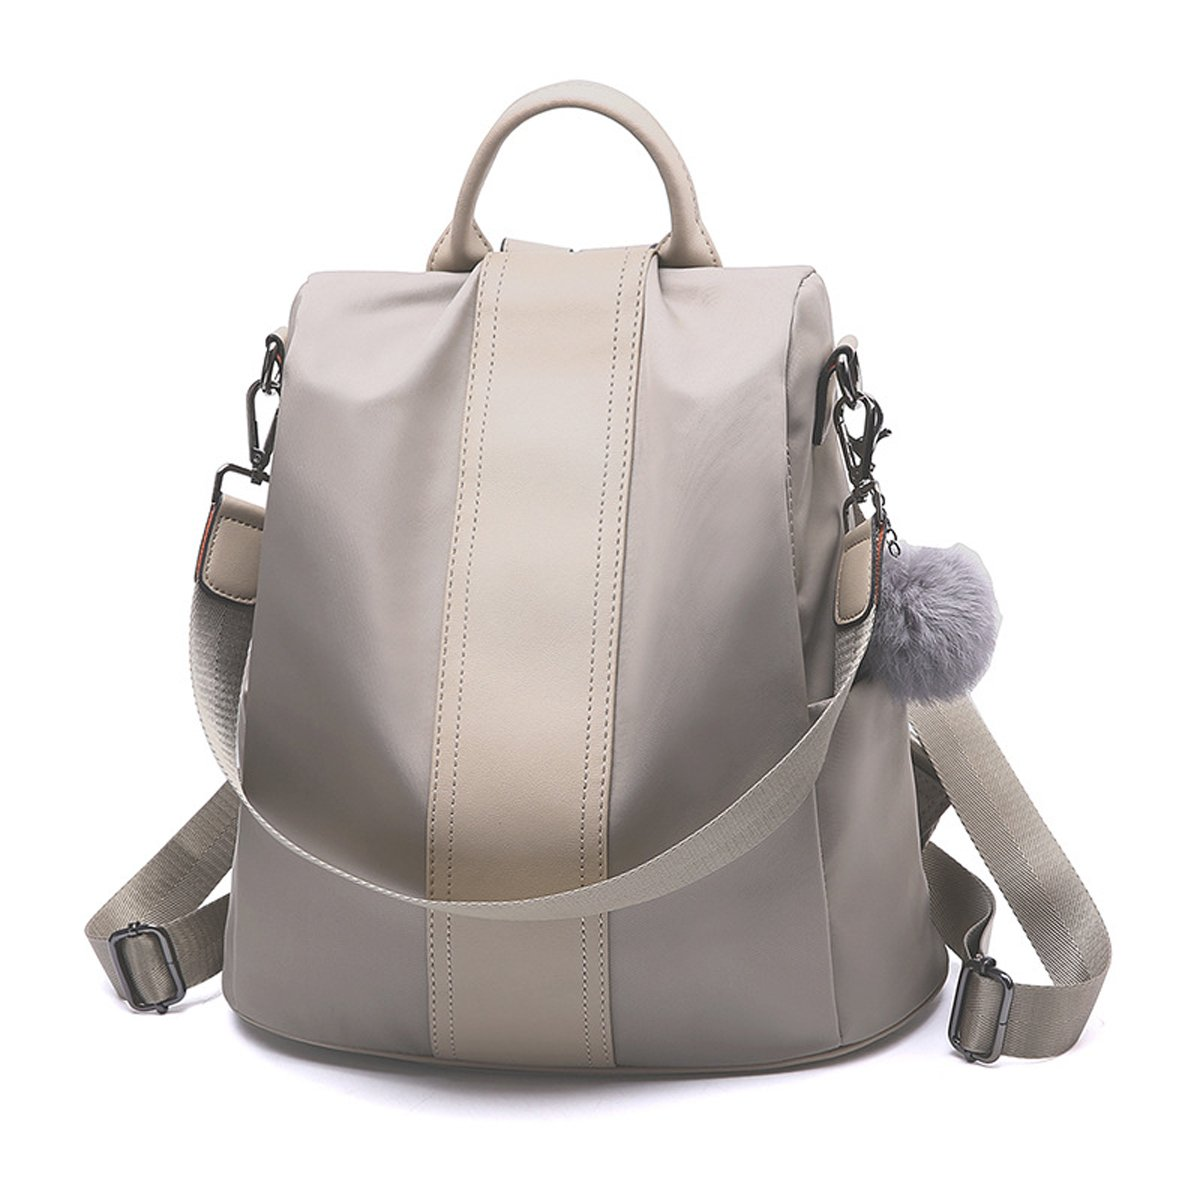 Nevenka Summer Backpack Purses for Women Zipper Close Polyester Cloth Shoulder Bags Top-handle Purse (Style 1, Grey)